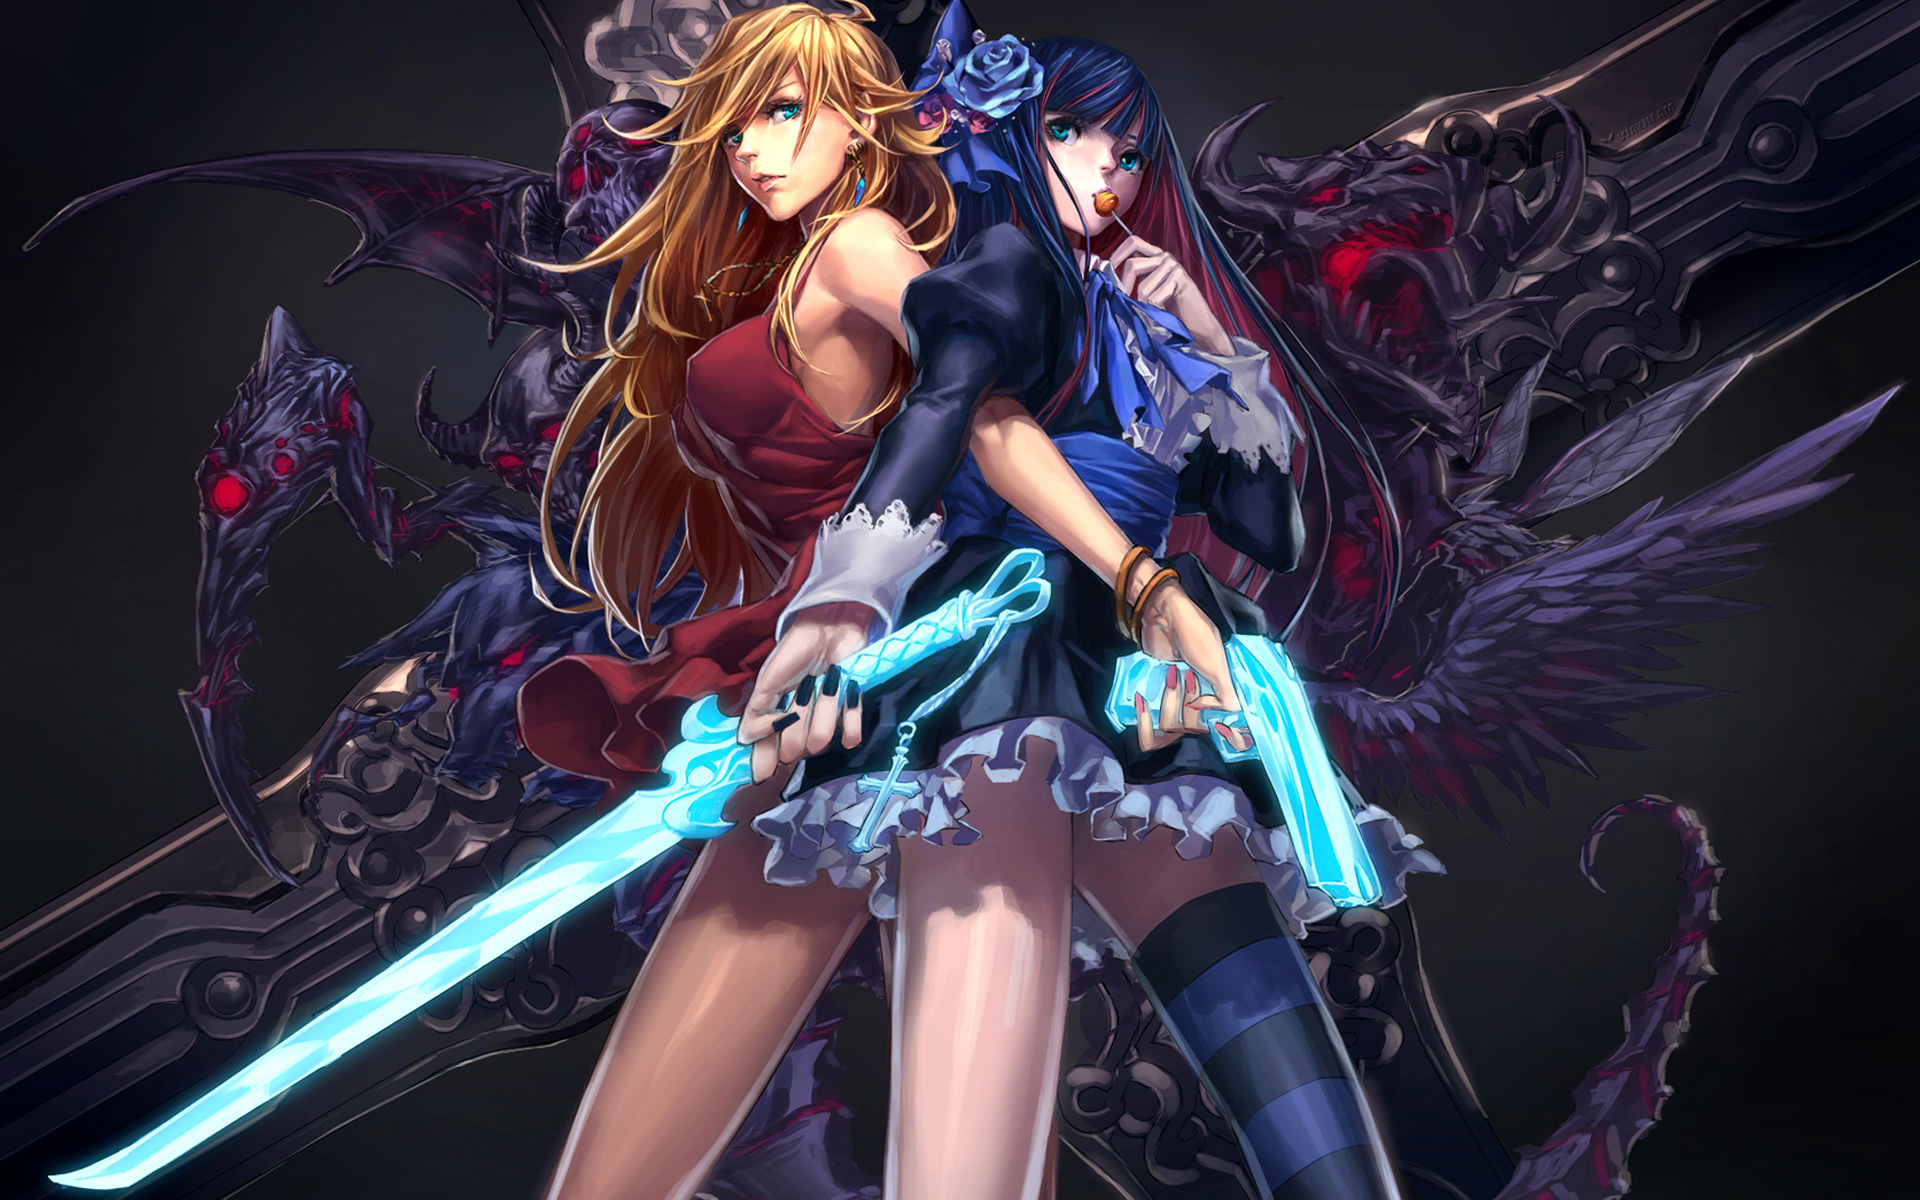 Anime Girls with Weapons Wallpaper